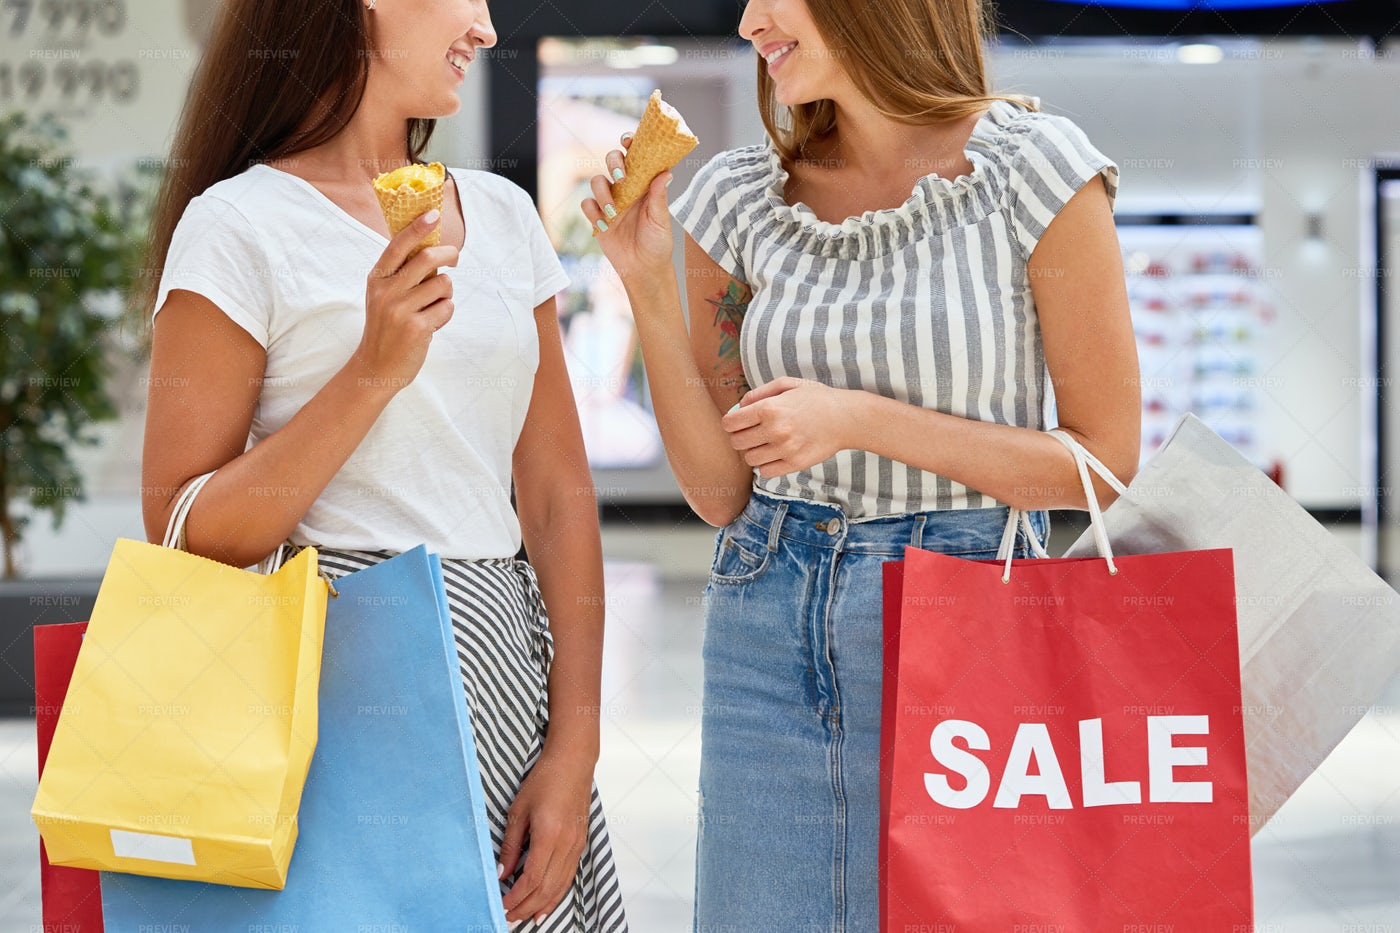 Pretty Girls Shopping In Mall On...: Stock Photos